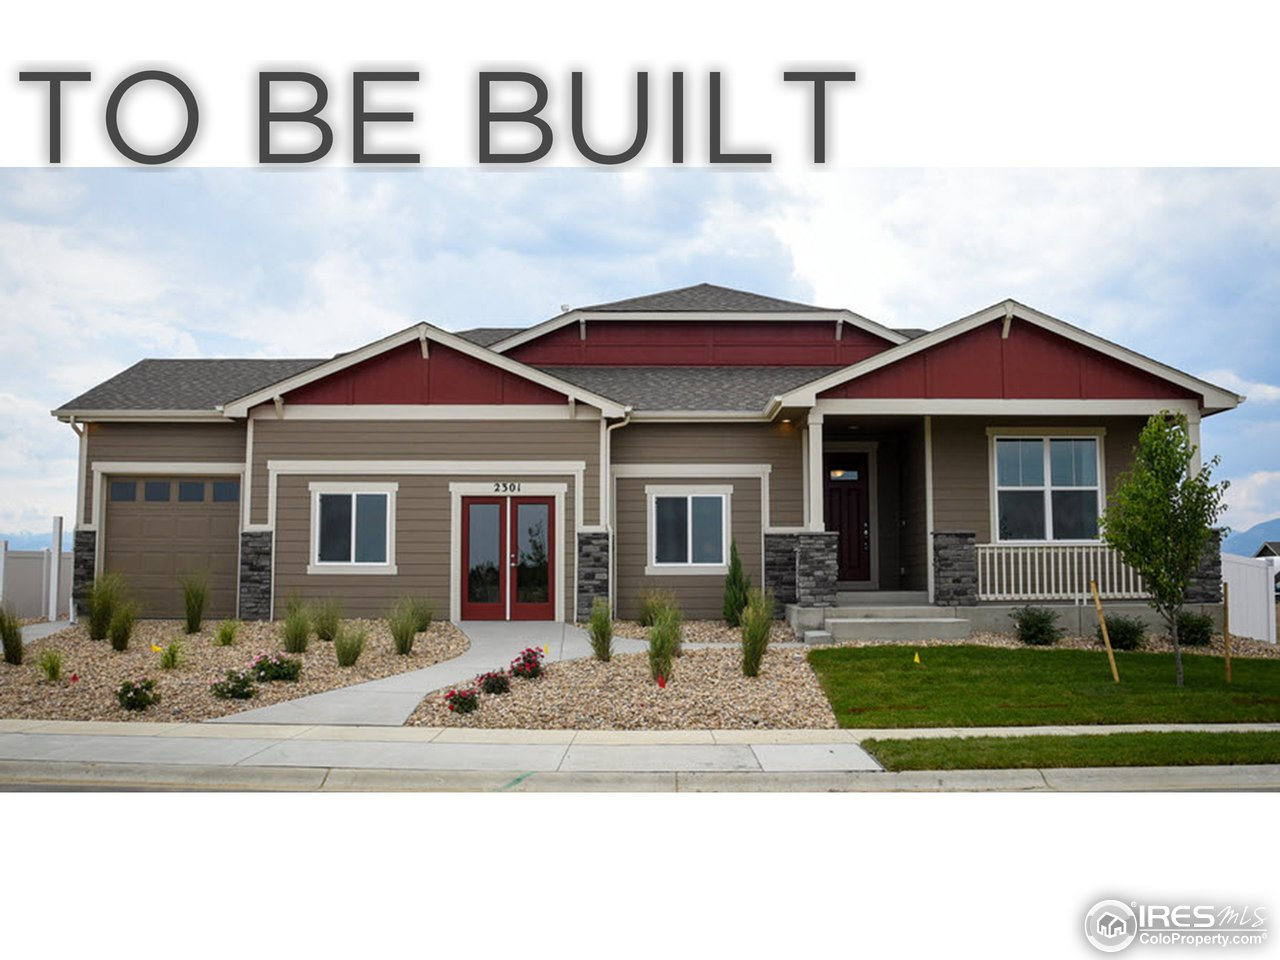 8721 15th St Rd, Greeley CO 80634